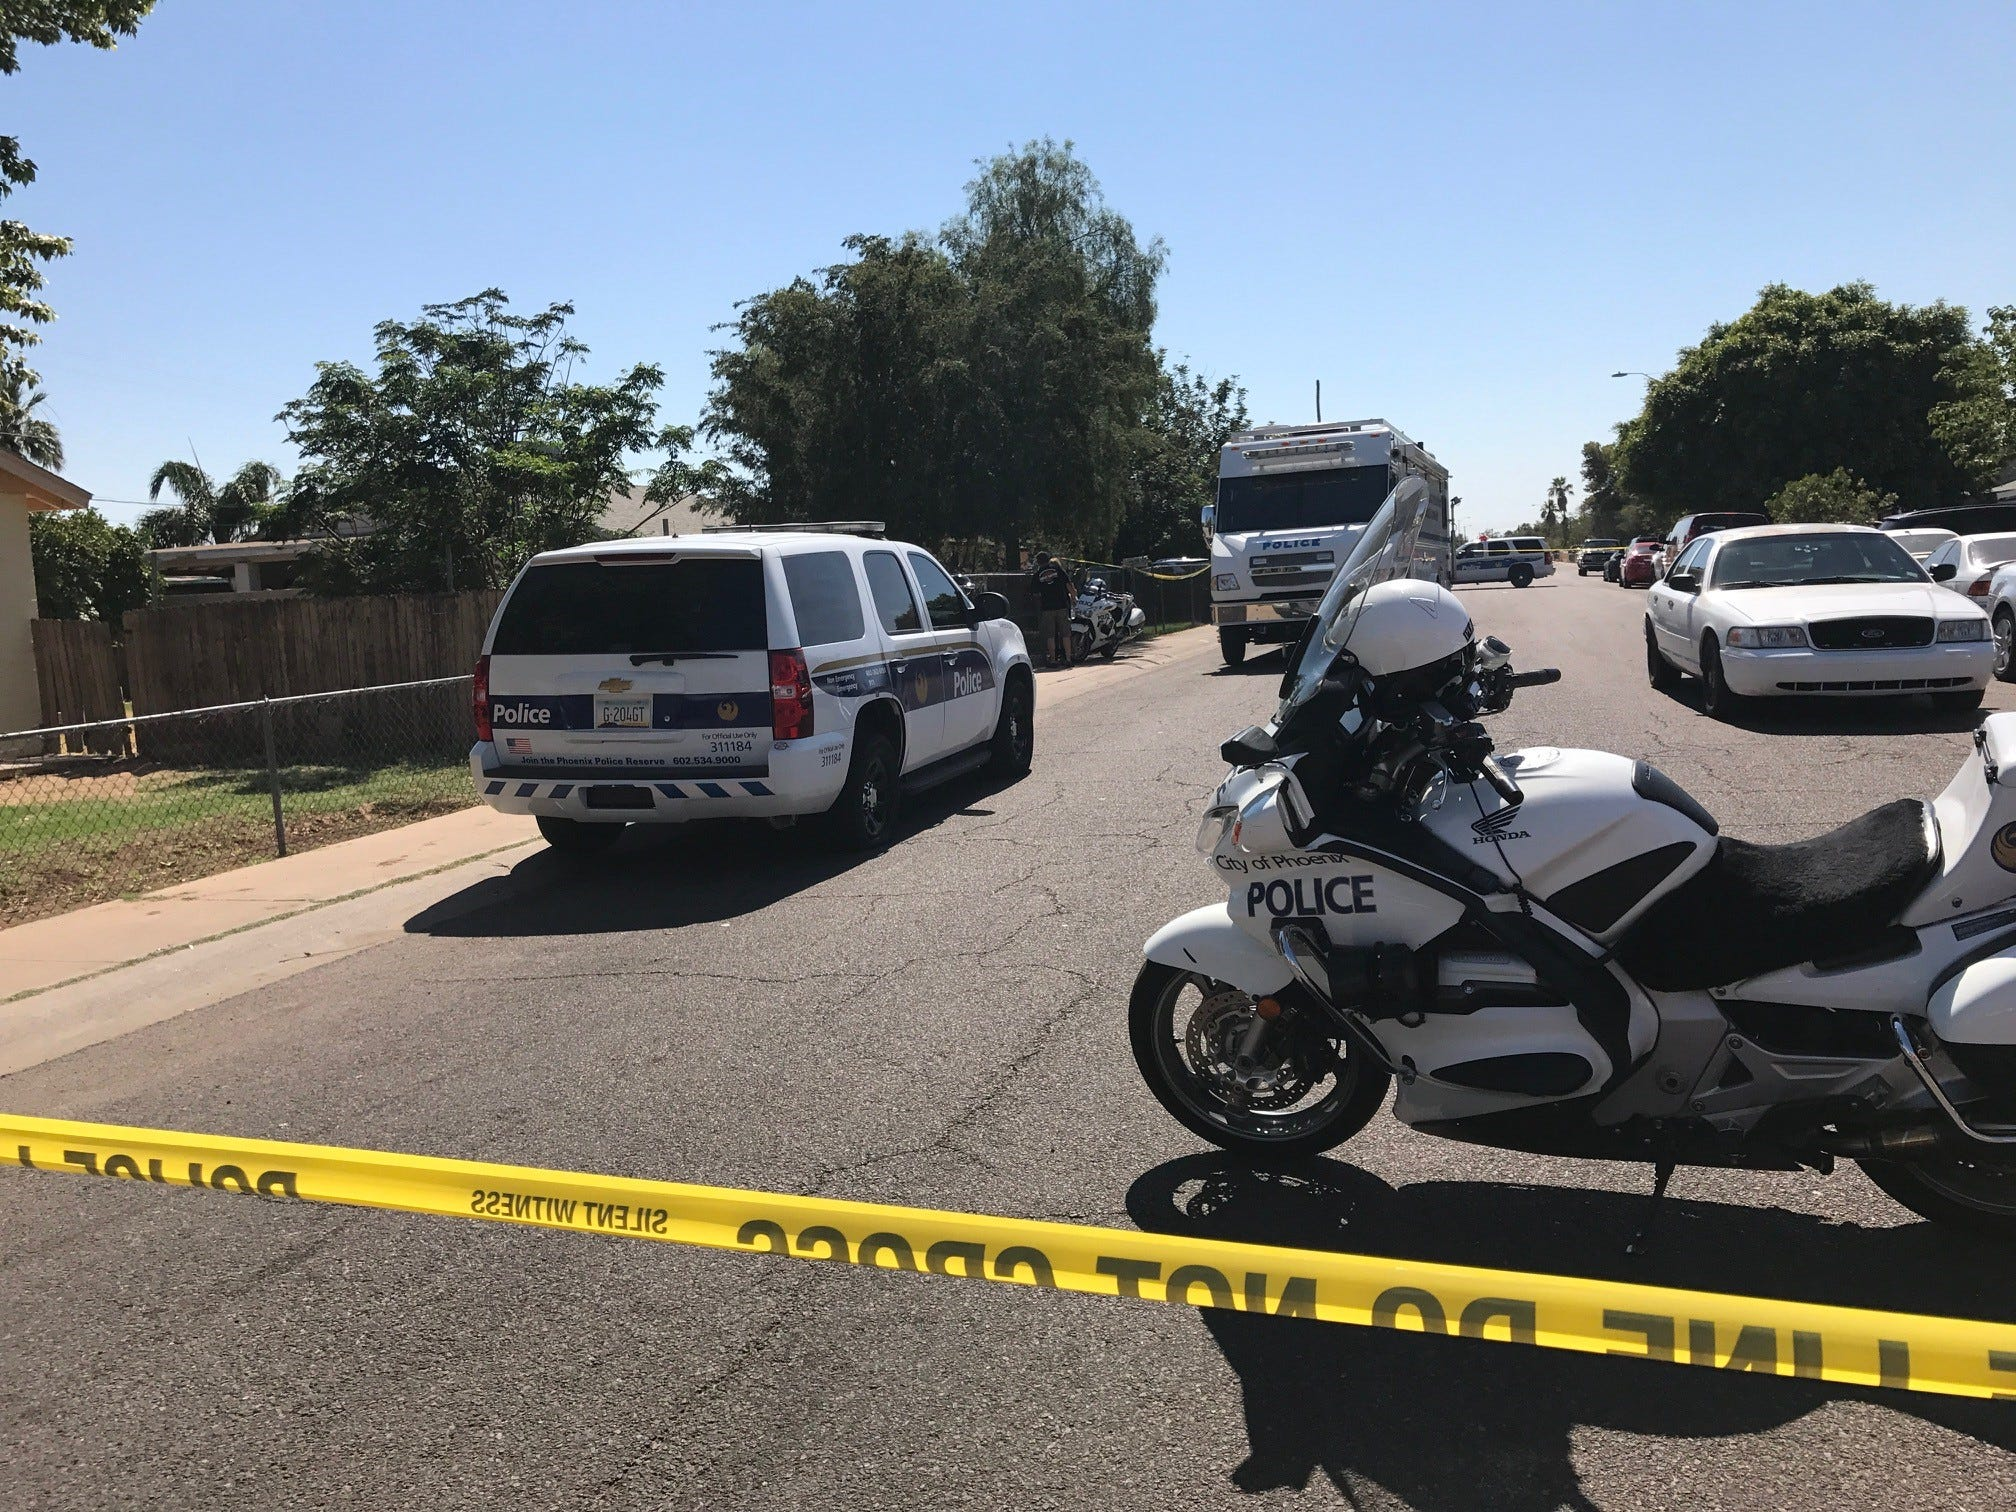 Phoenix police officer shoots dog attacking 1-year-old; child later dies from injuries